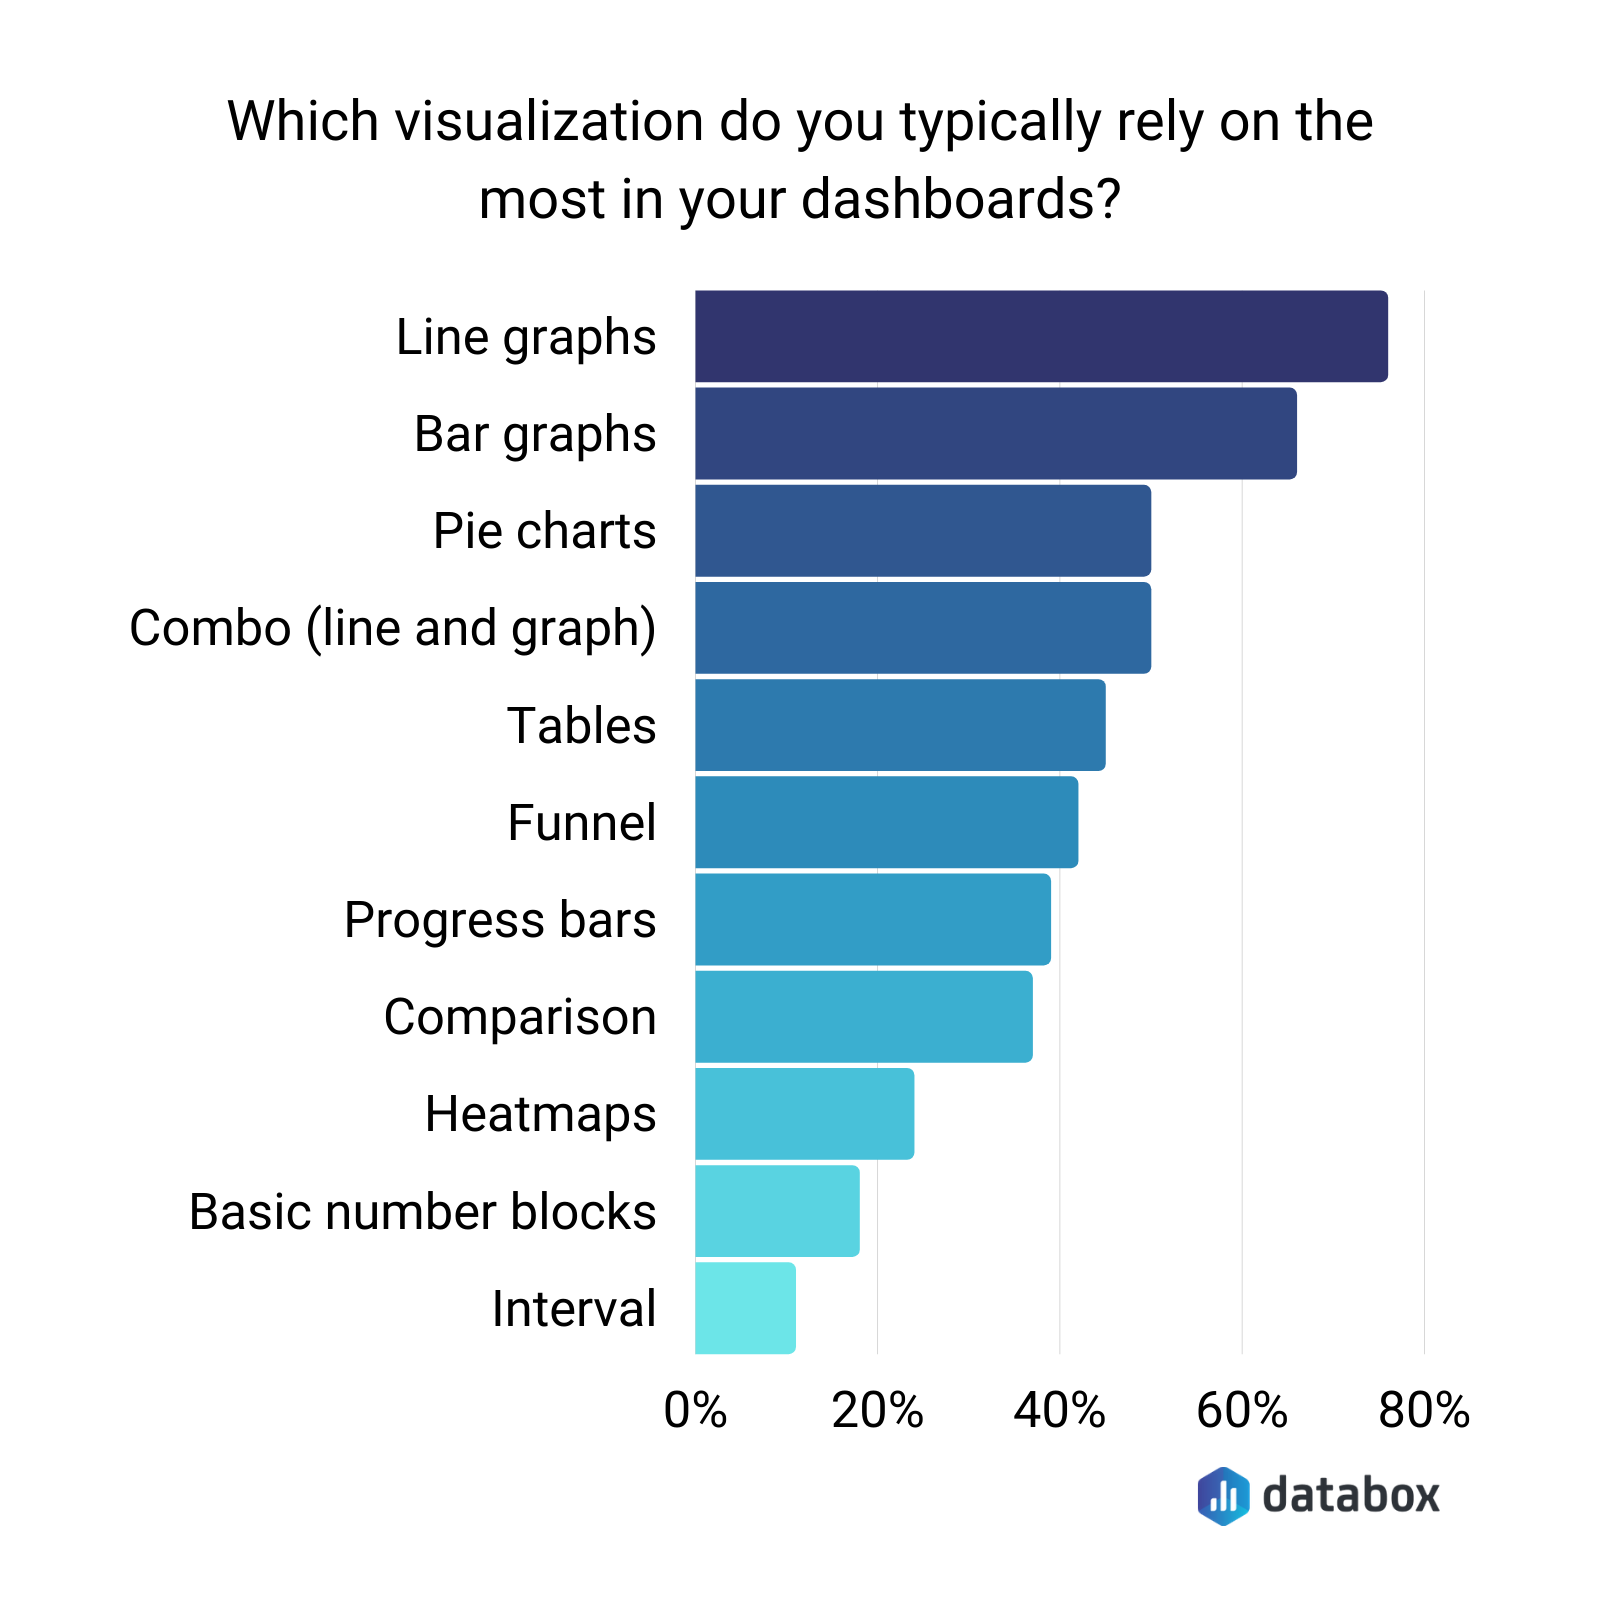 most popular visual elements people include in their dashboards